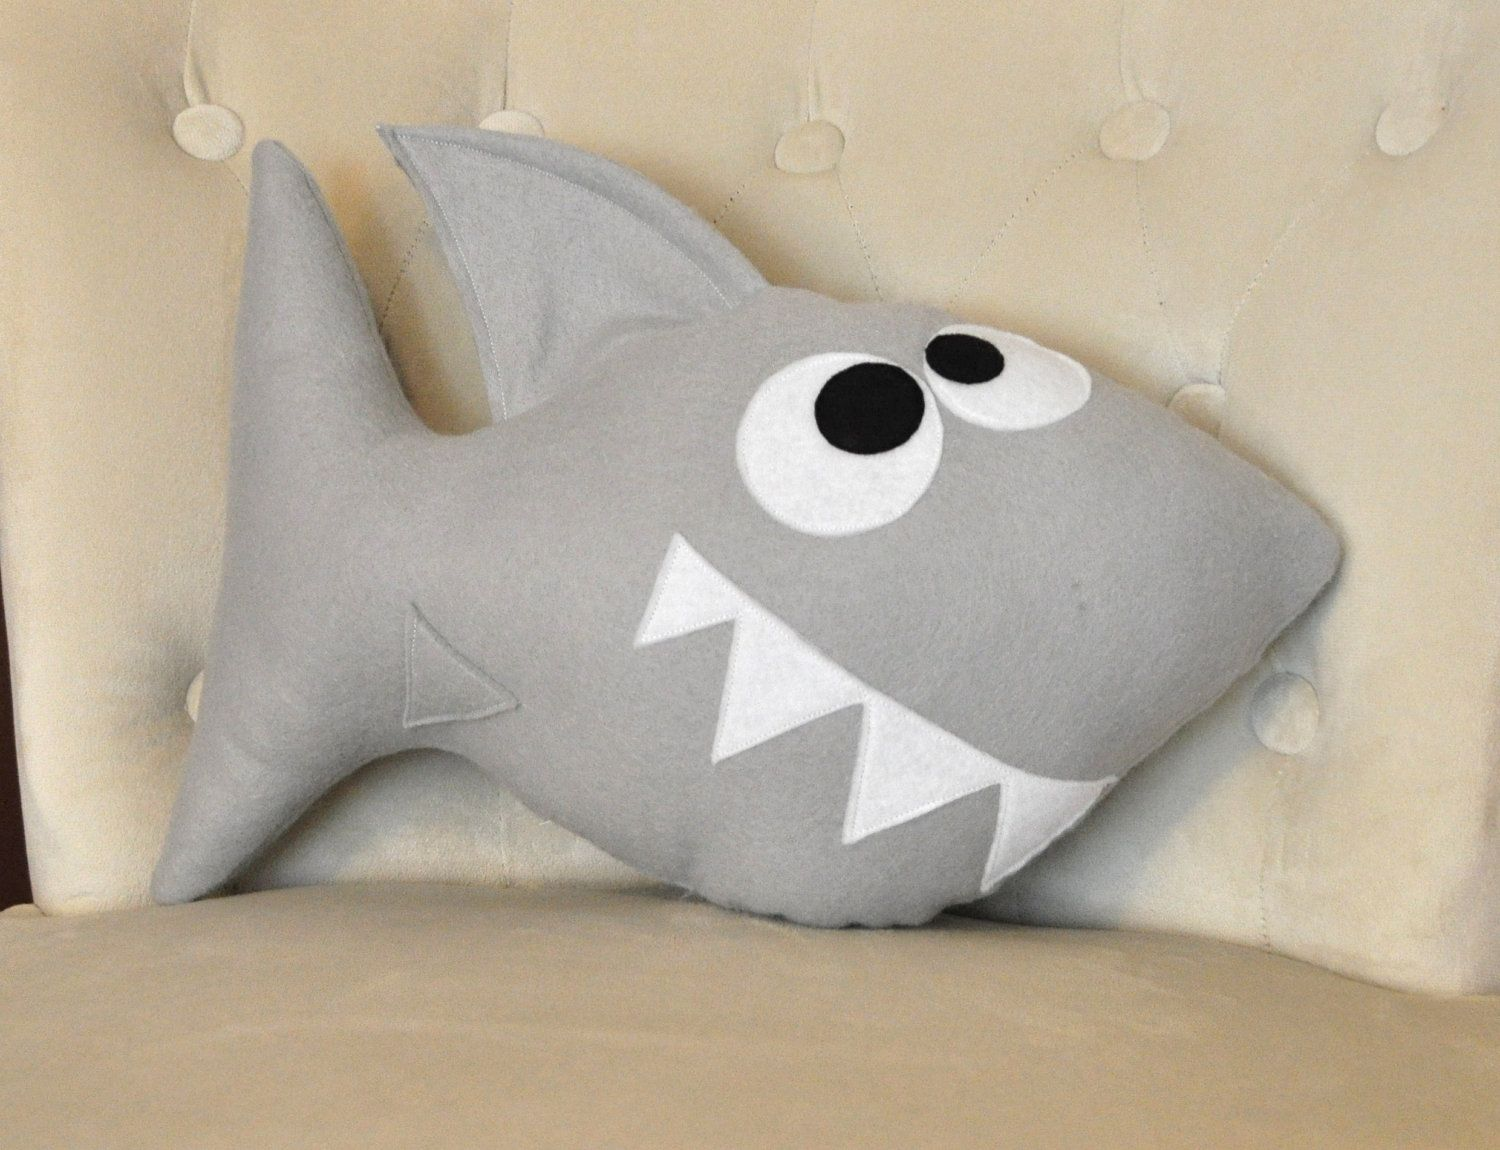 Cute Shark Pillow : Shark Plush Pillow -Chomp the Shark Plush Pillow- NEW BEDBUGGS DESIGN Too cute, Search and By